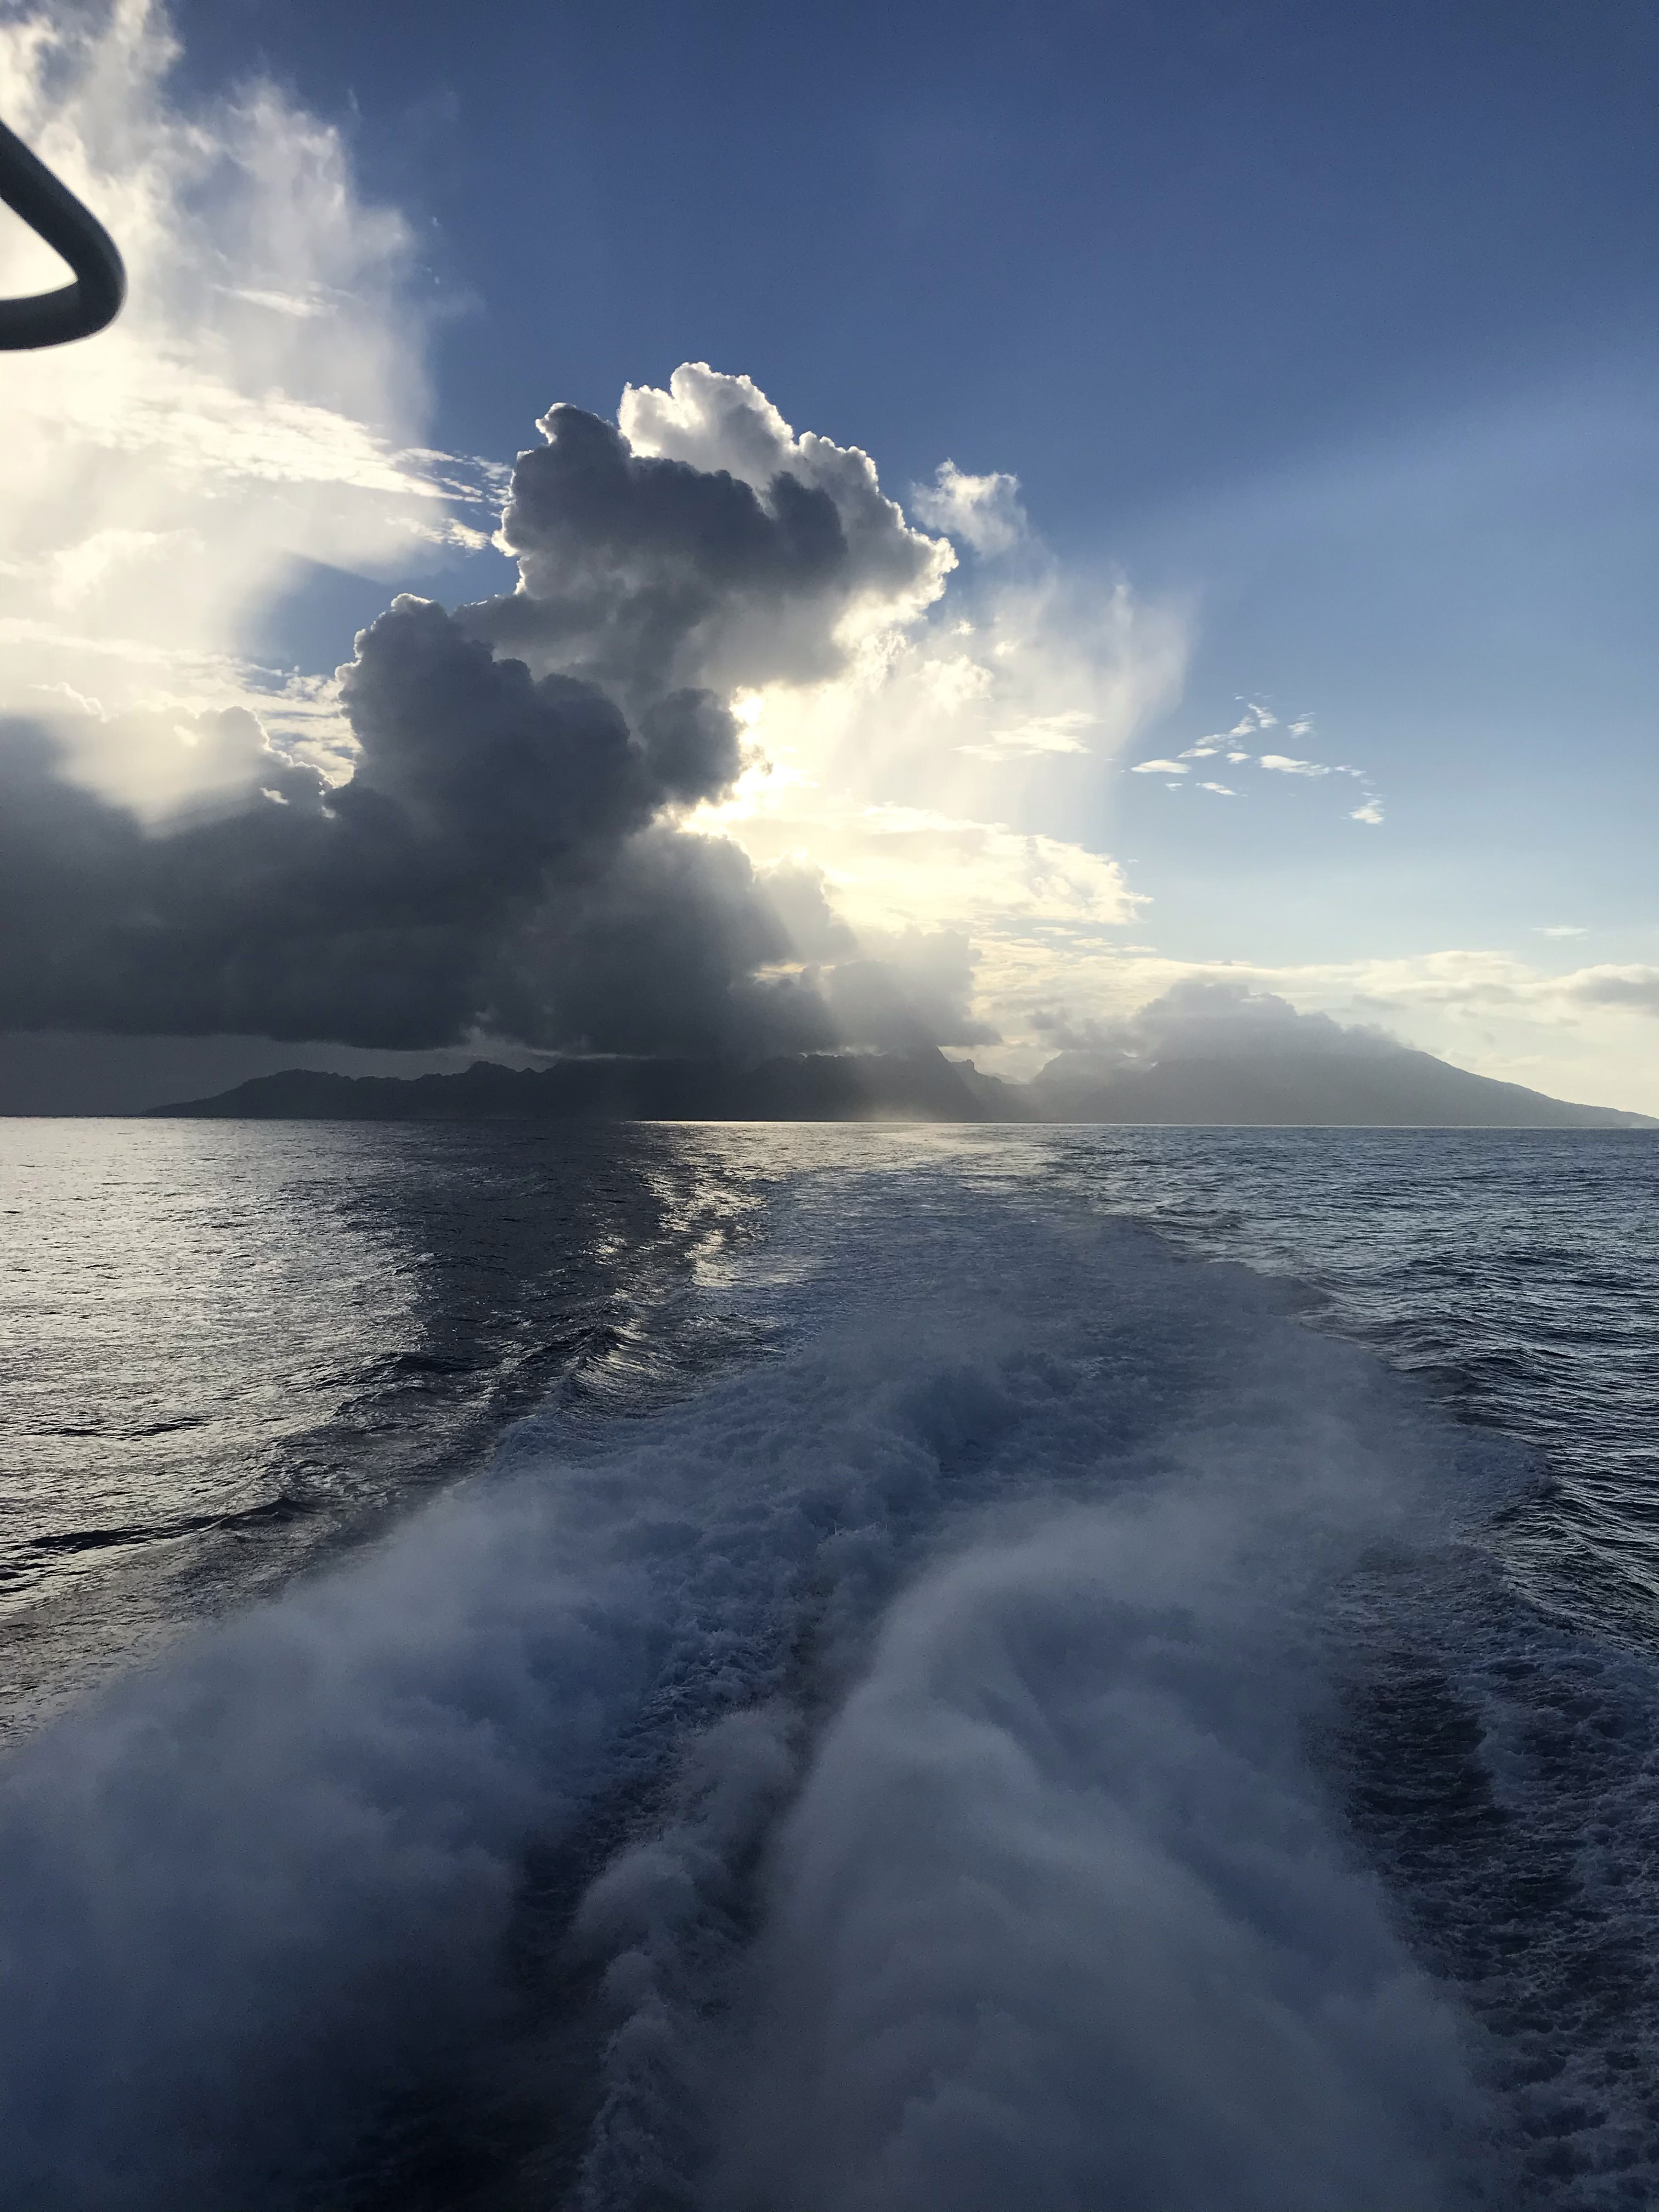 Moorea from the Sea